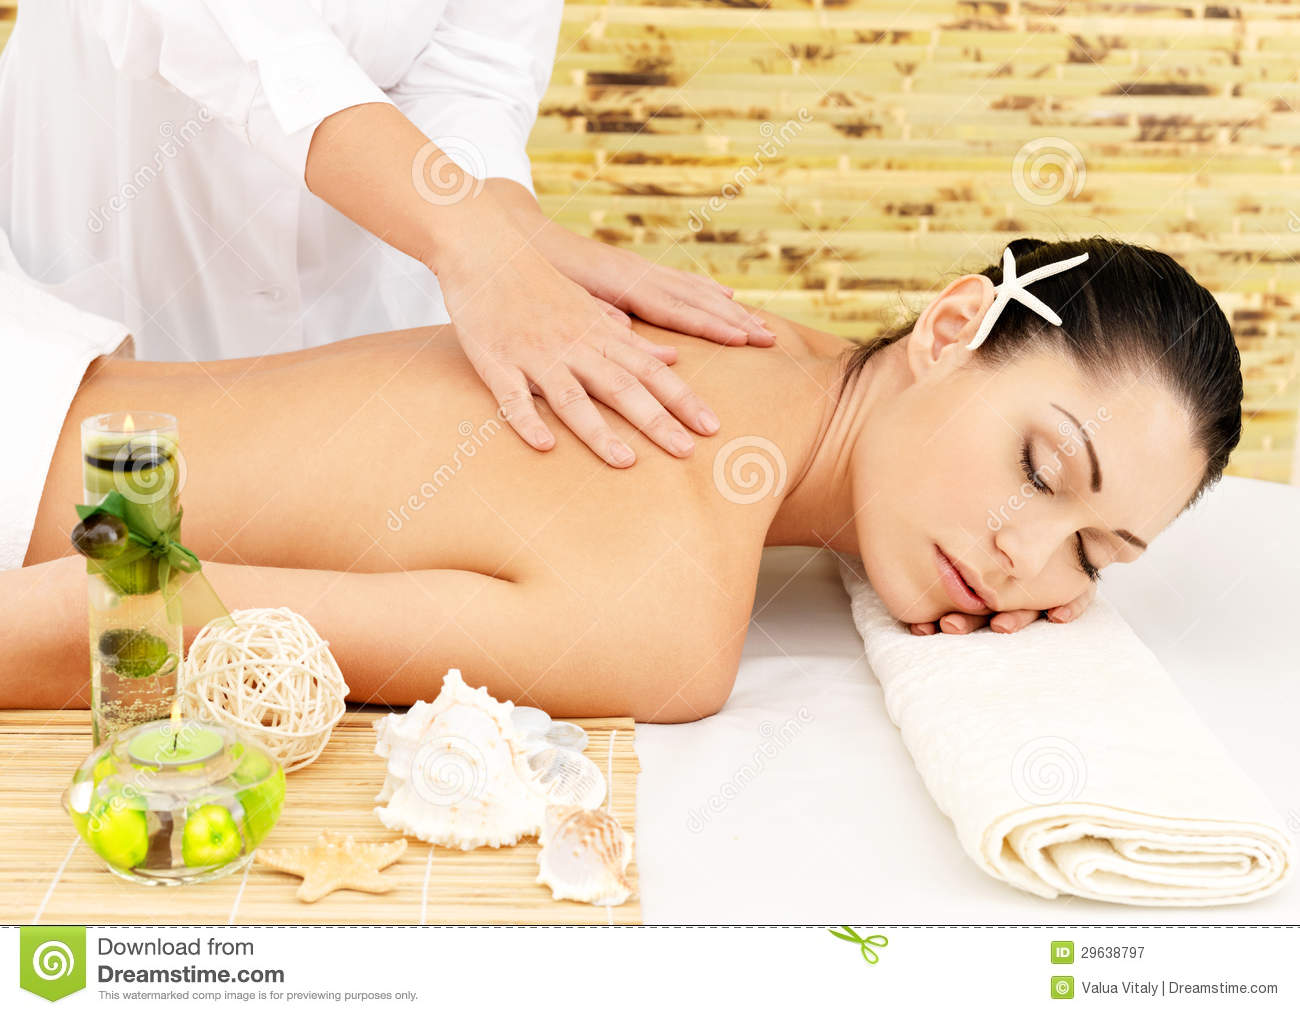 Salon Massage Body Body Woman Having Massage Of Body In Spa Salon Stock Image